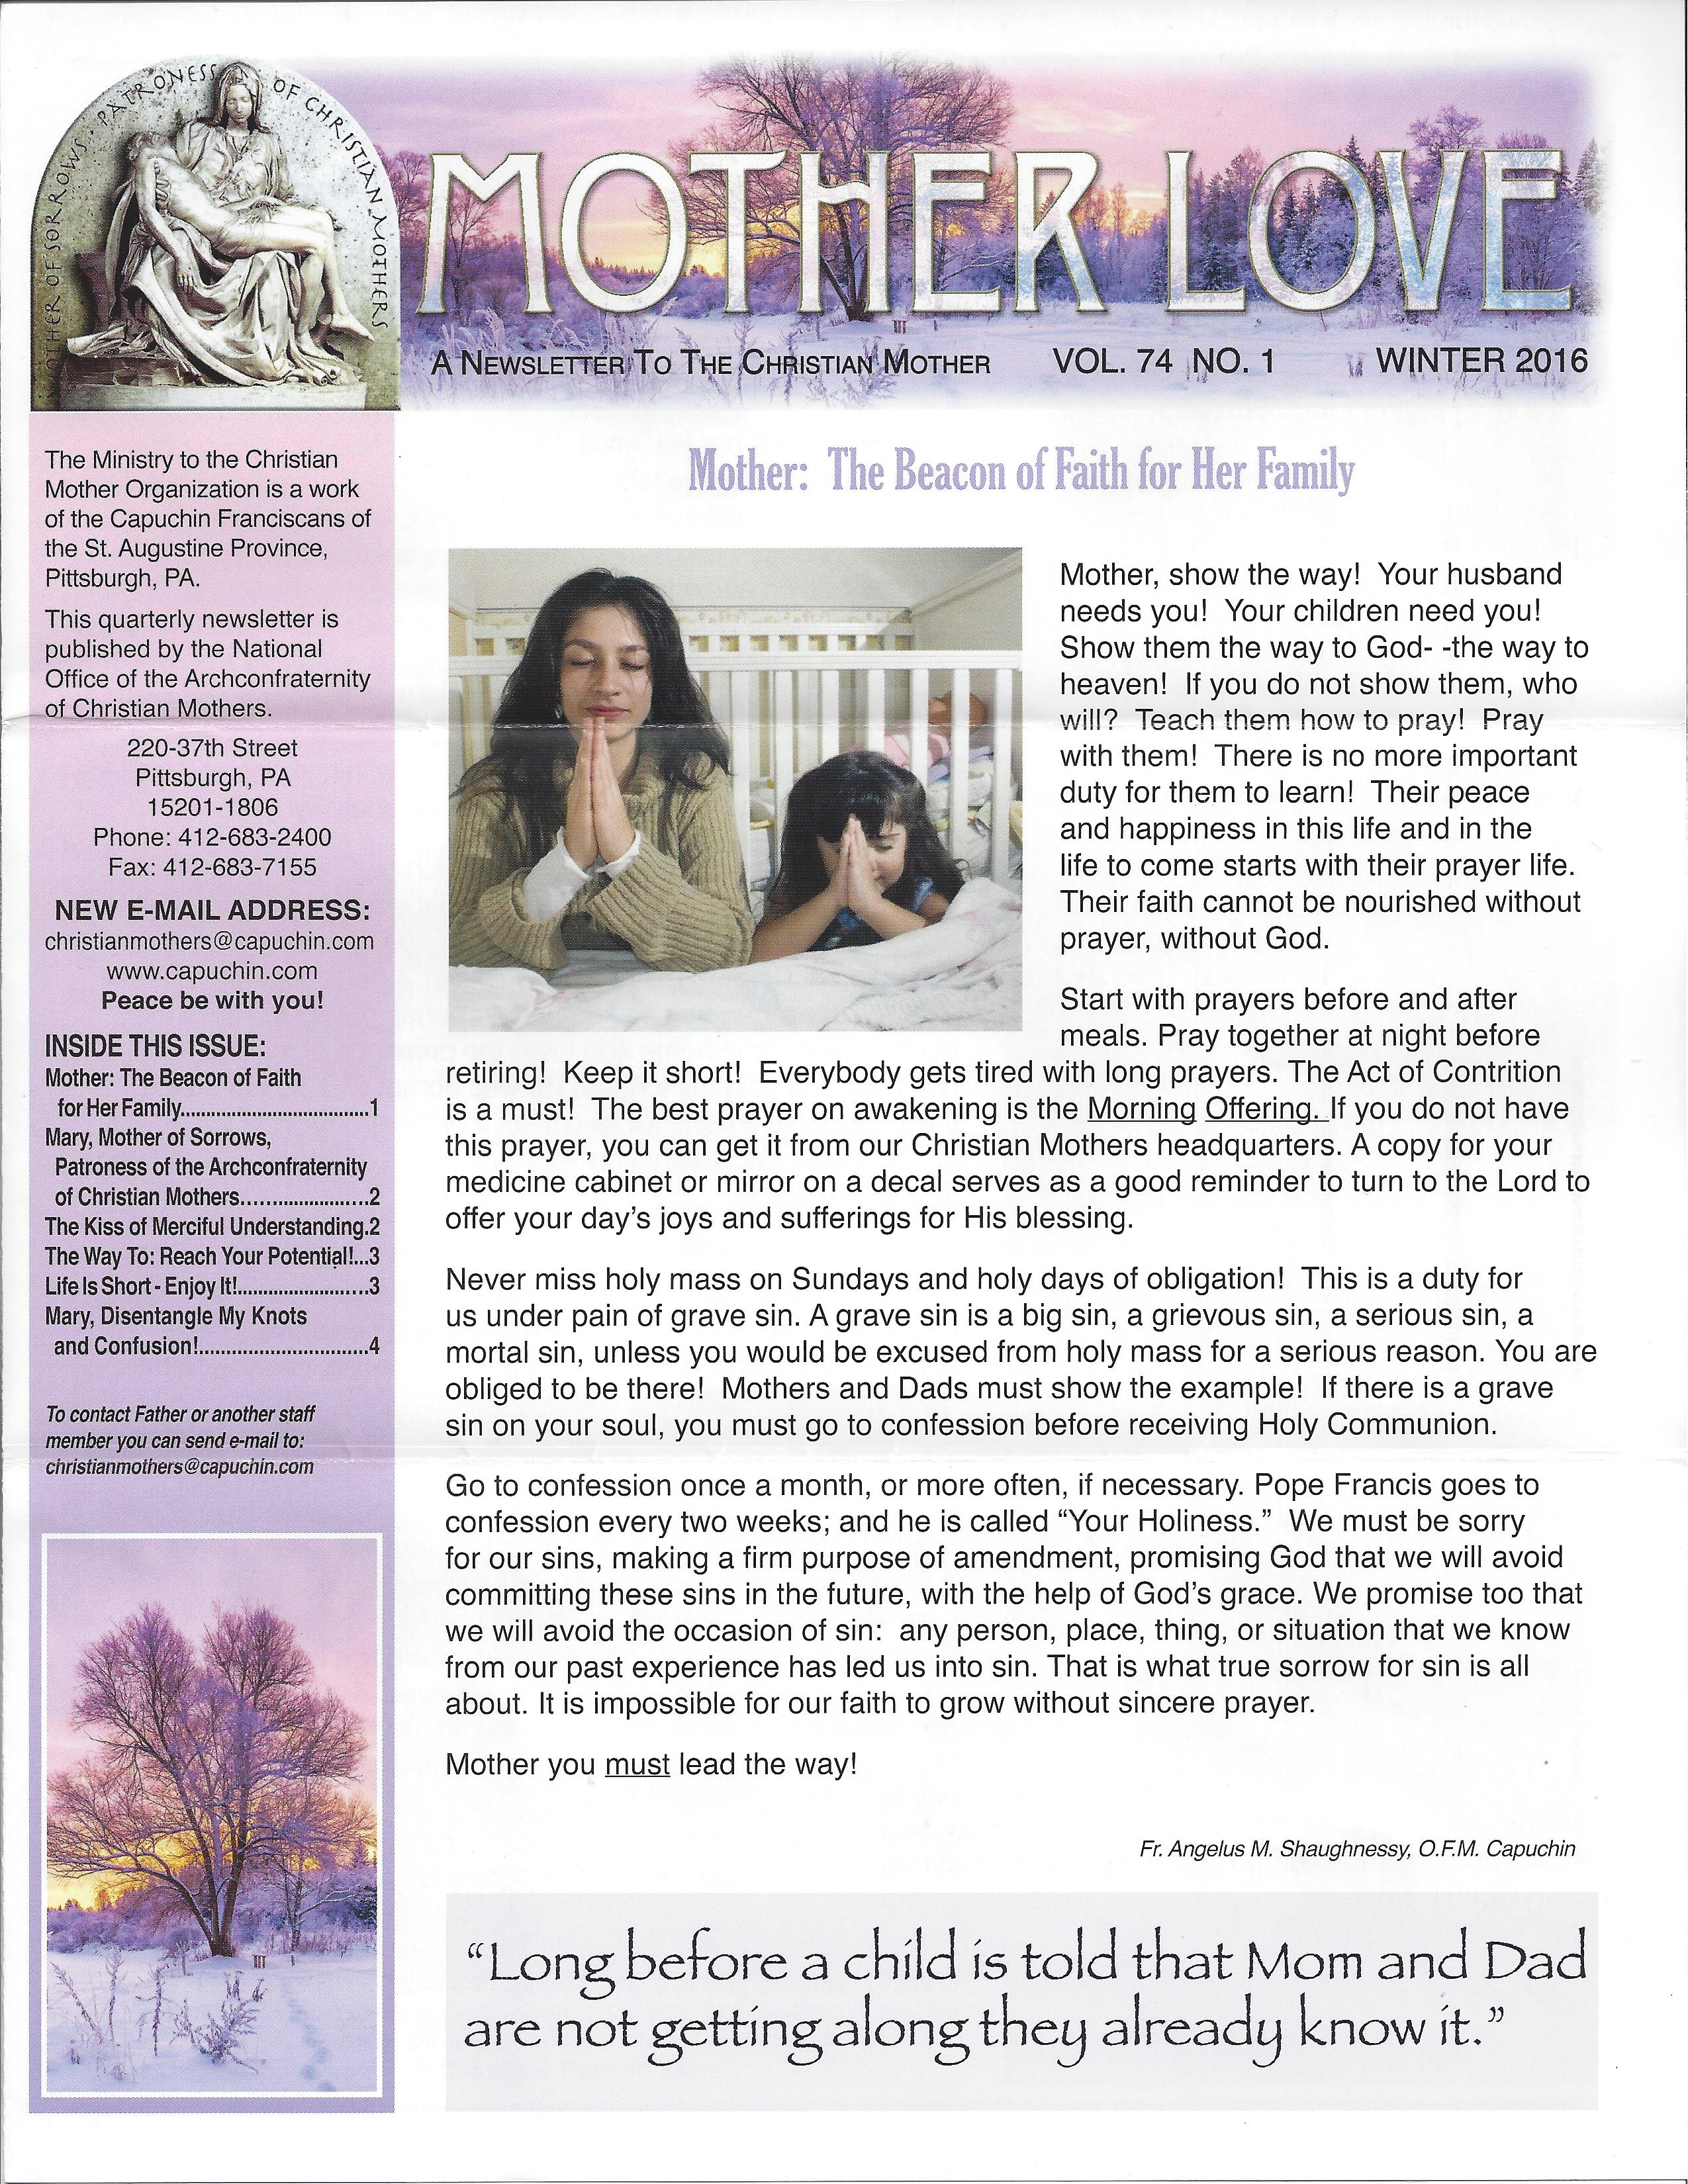 christian-mother-newsletter-page-1-winter-2016